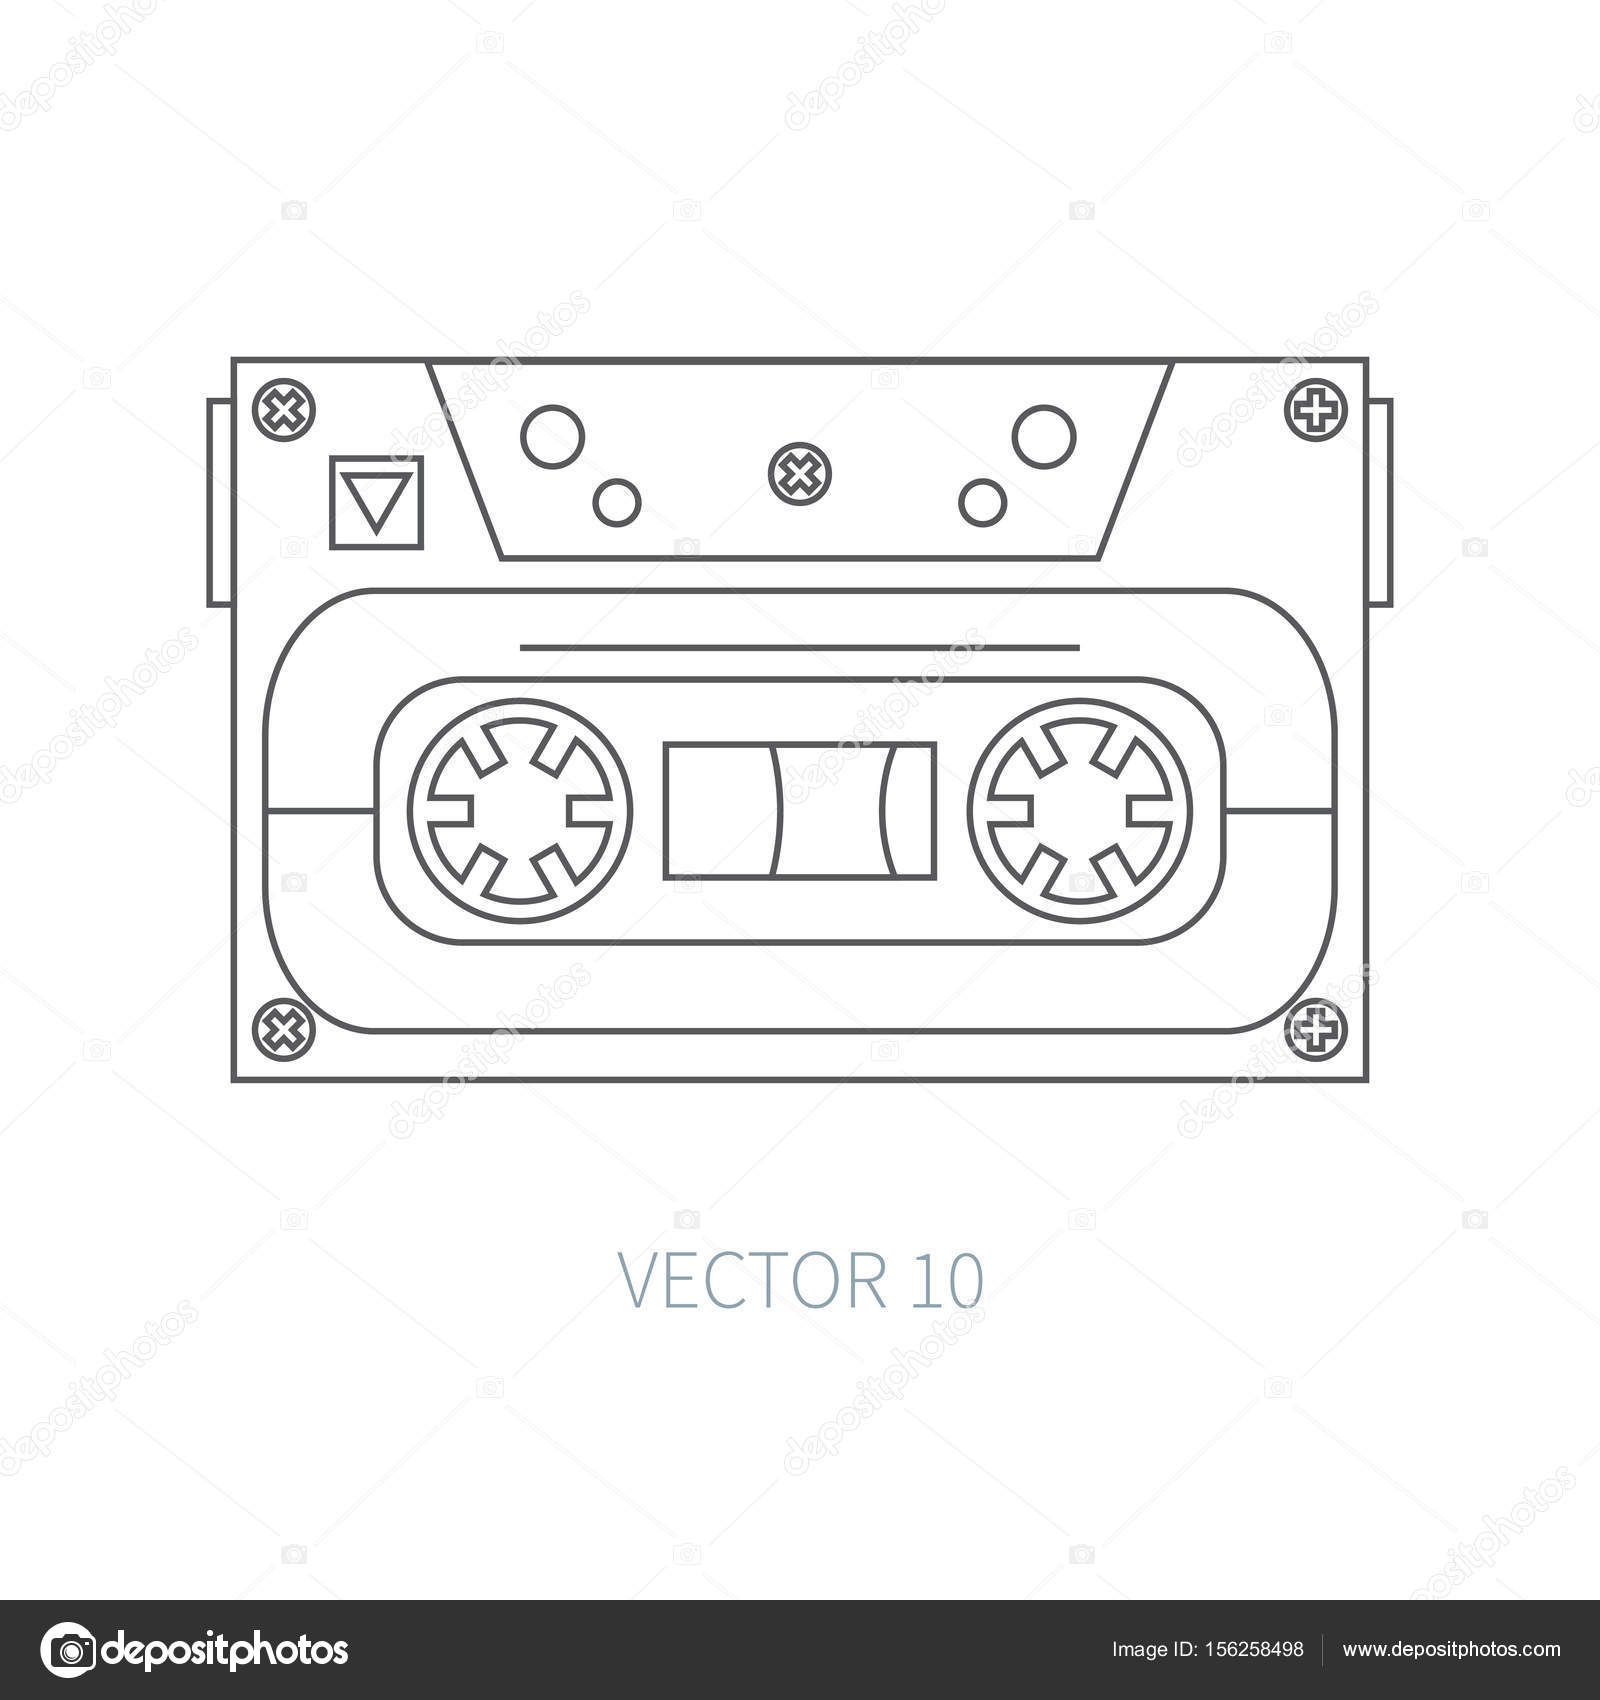 Simple Wallpaper Music Hipster - depositphotos_156258498-stock-illustration-line-flat-vector-icon-audiocassette  Gallery_29049.jpg